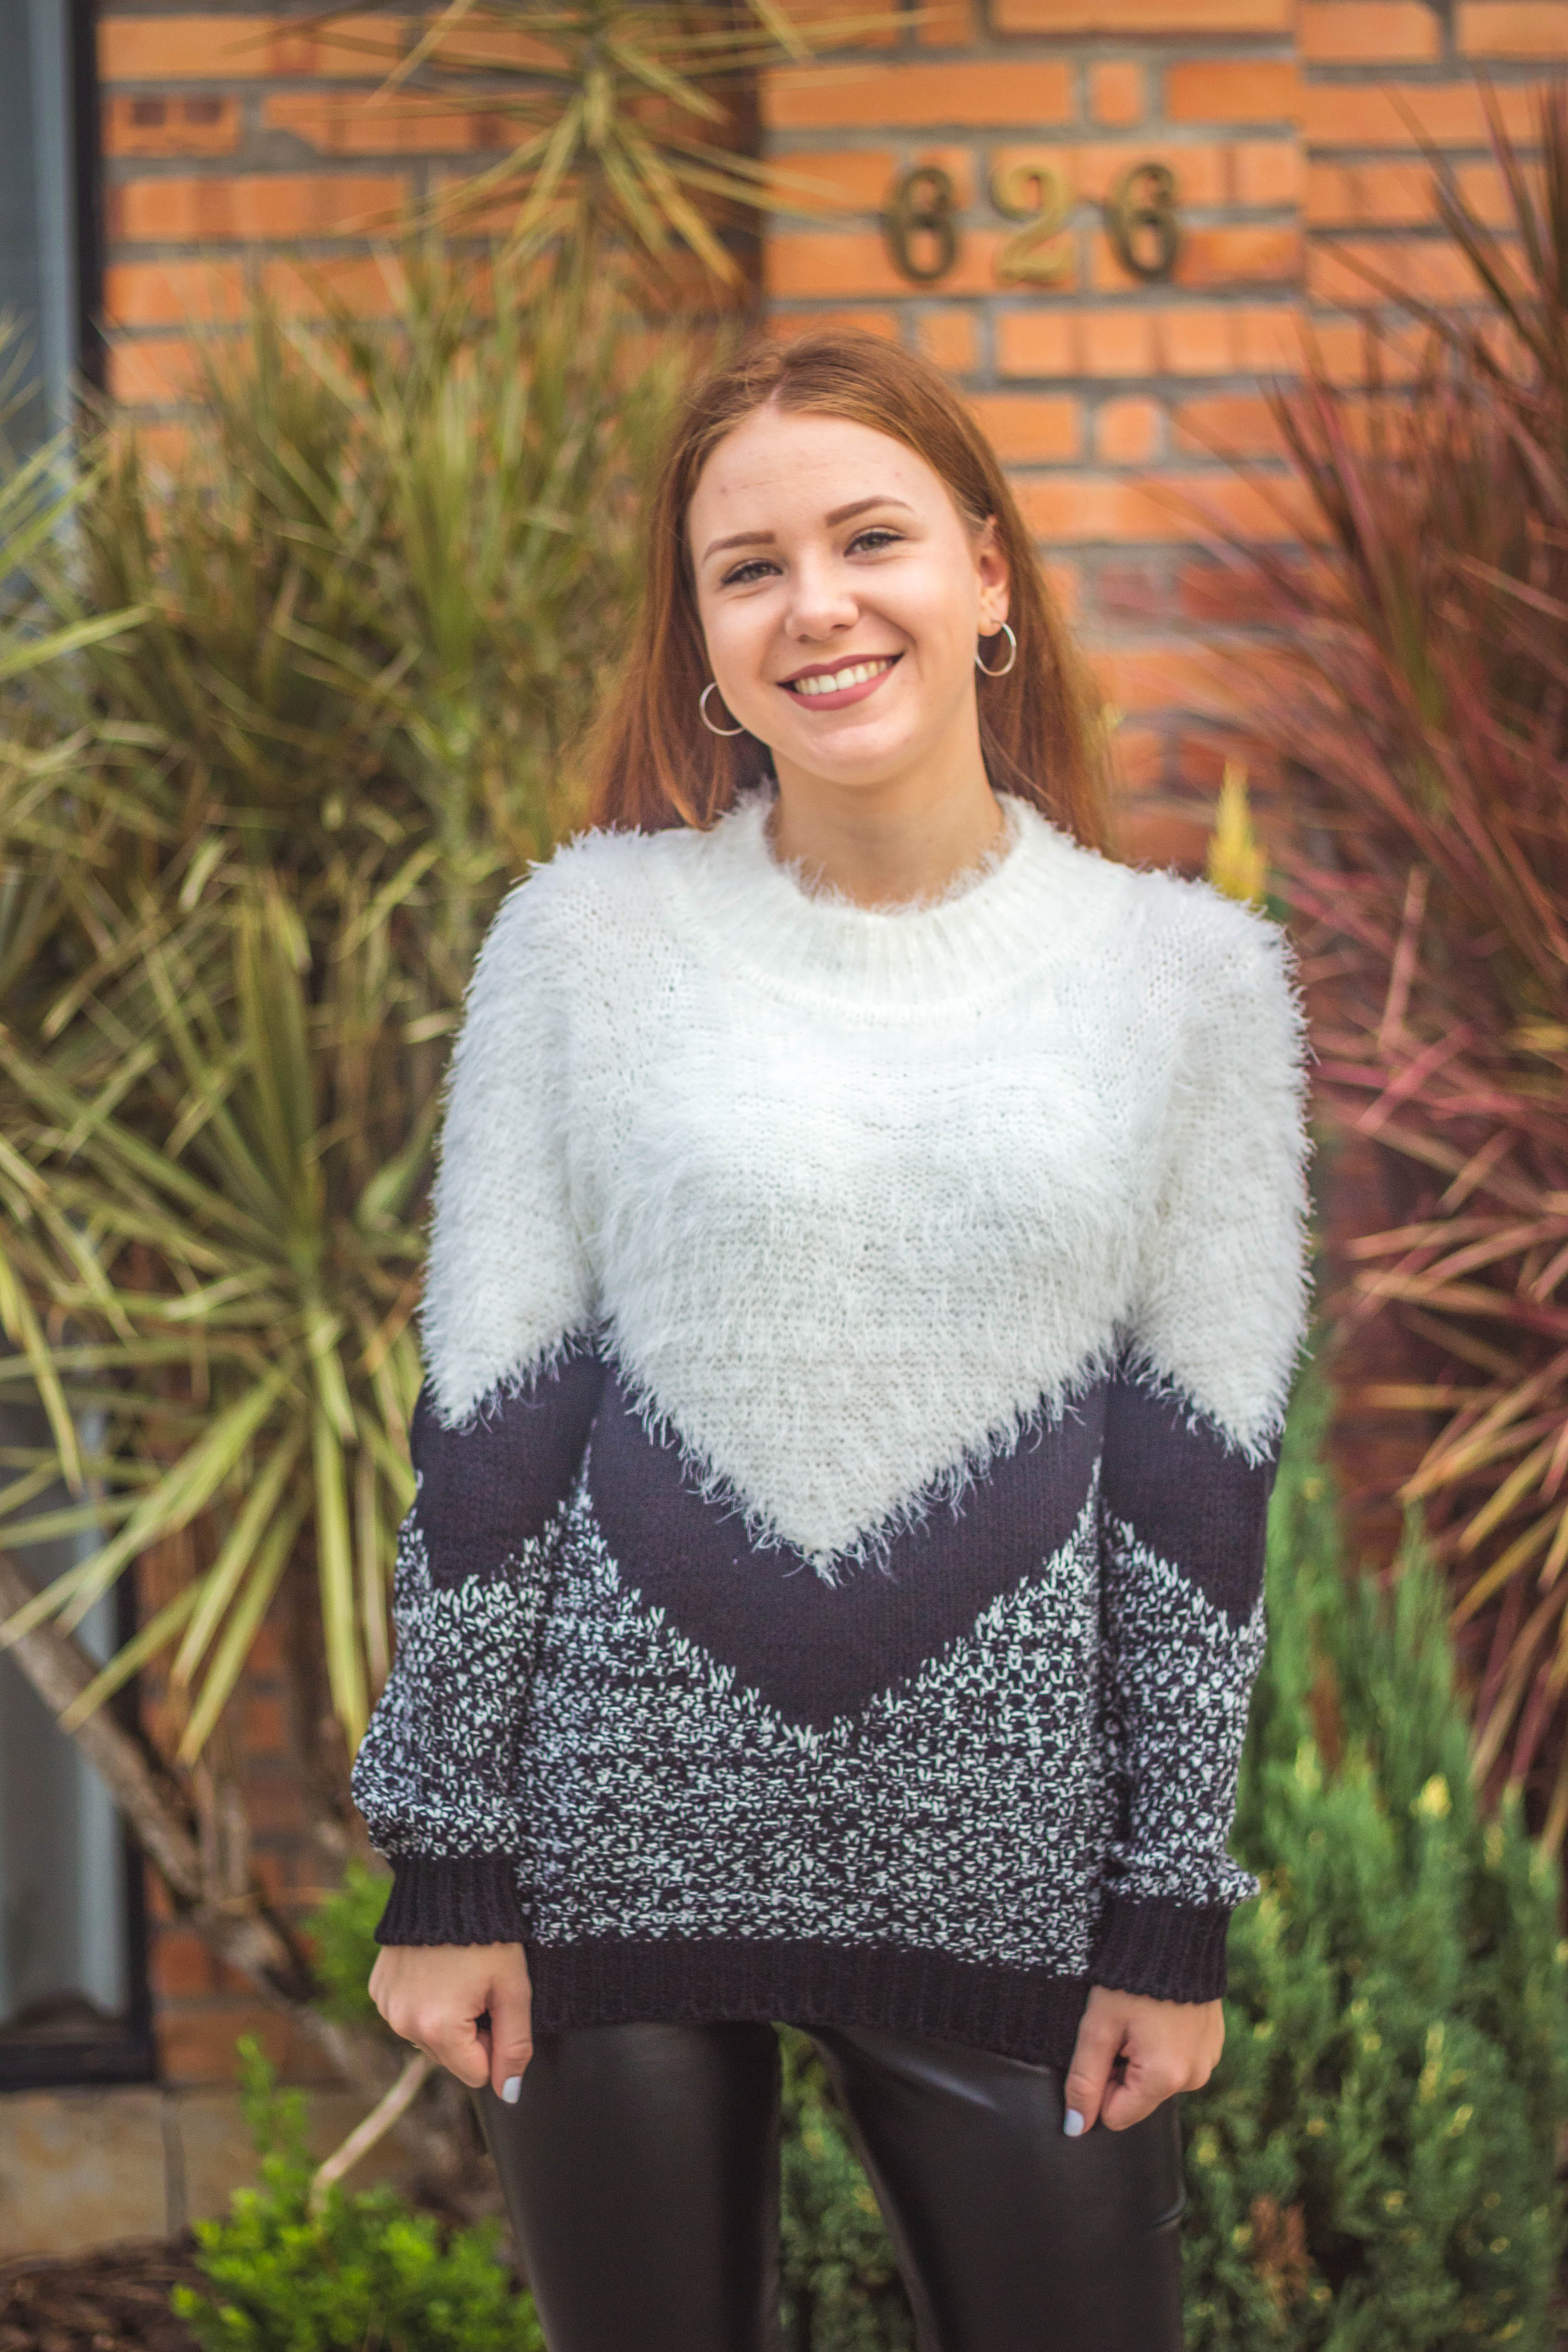 Woman Wearing a Knitted Sweater